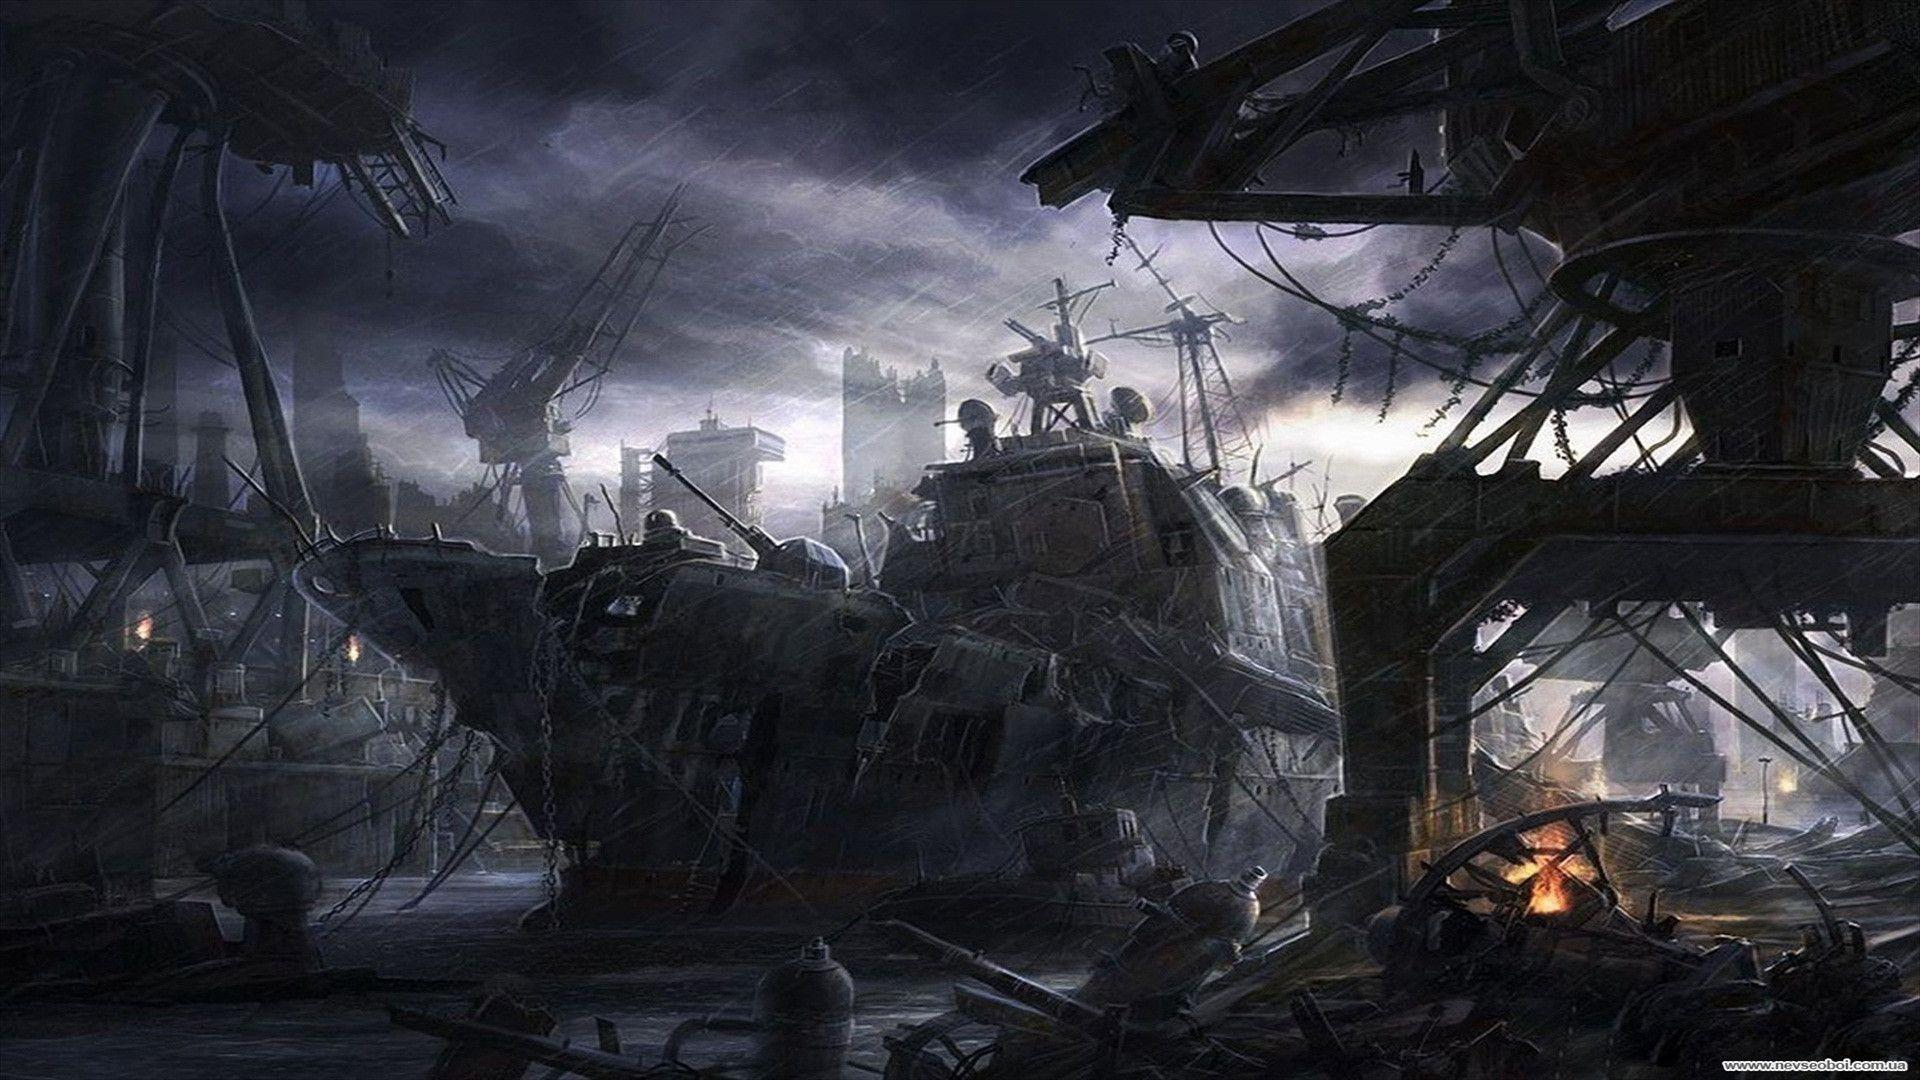 apocalyptic hd wallpaper 2560x1440 - photo #27